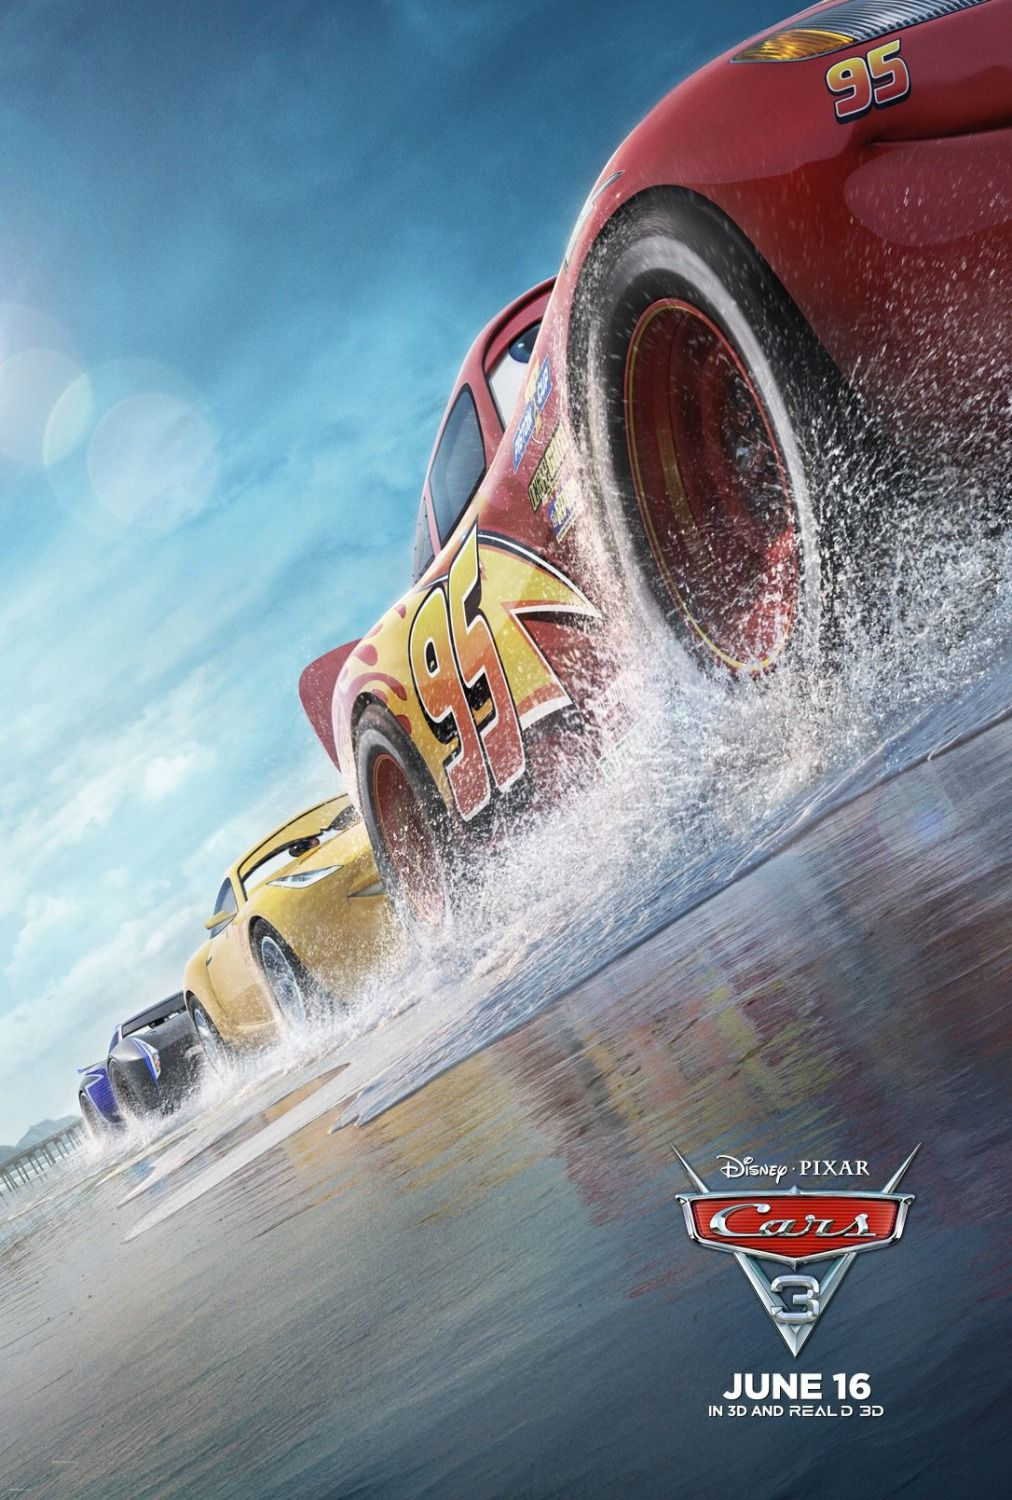 Disney Cars 3 Wallpaper >> Movie Review Cars 3 Entertainment Cars 3 Full Movie Movies